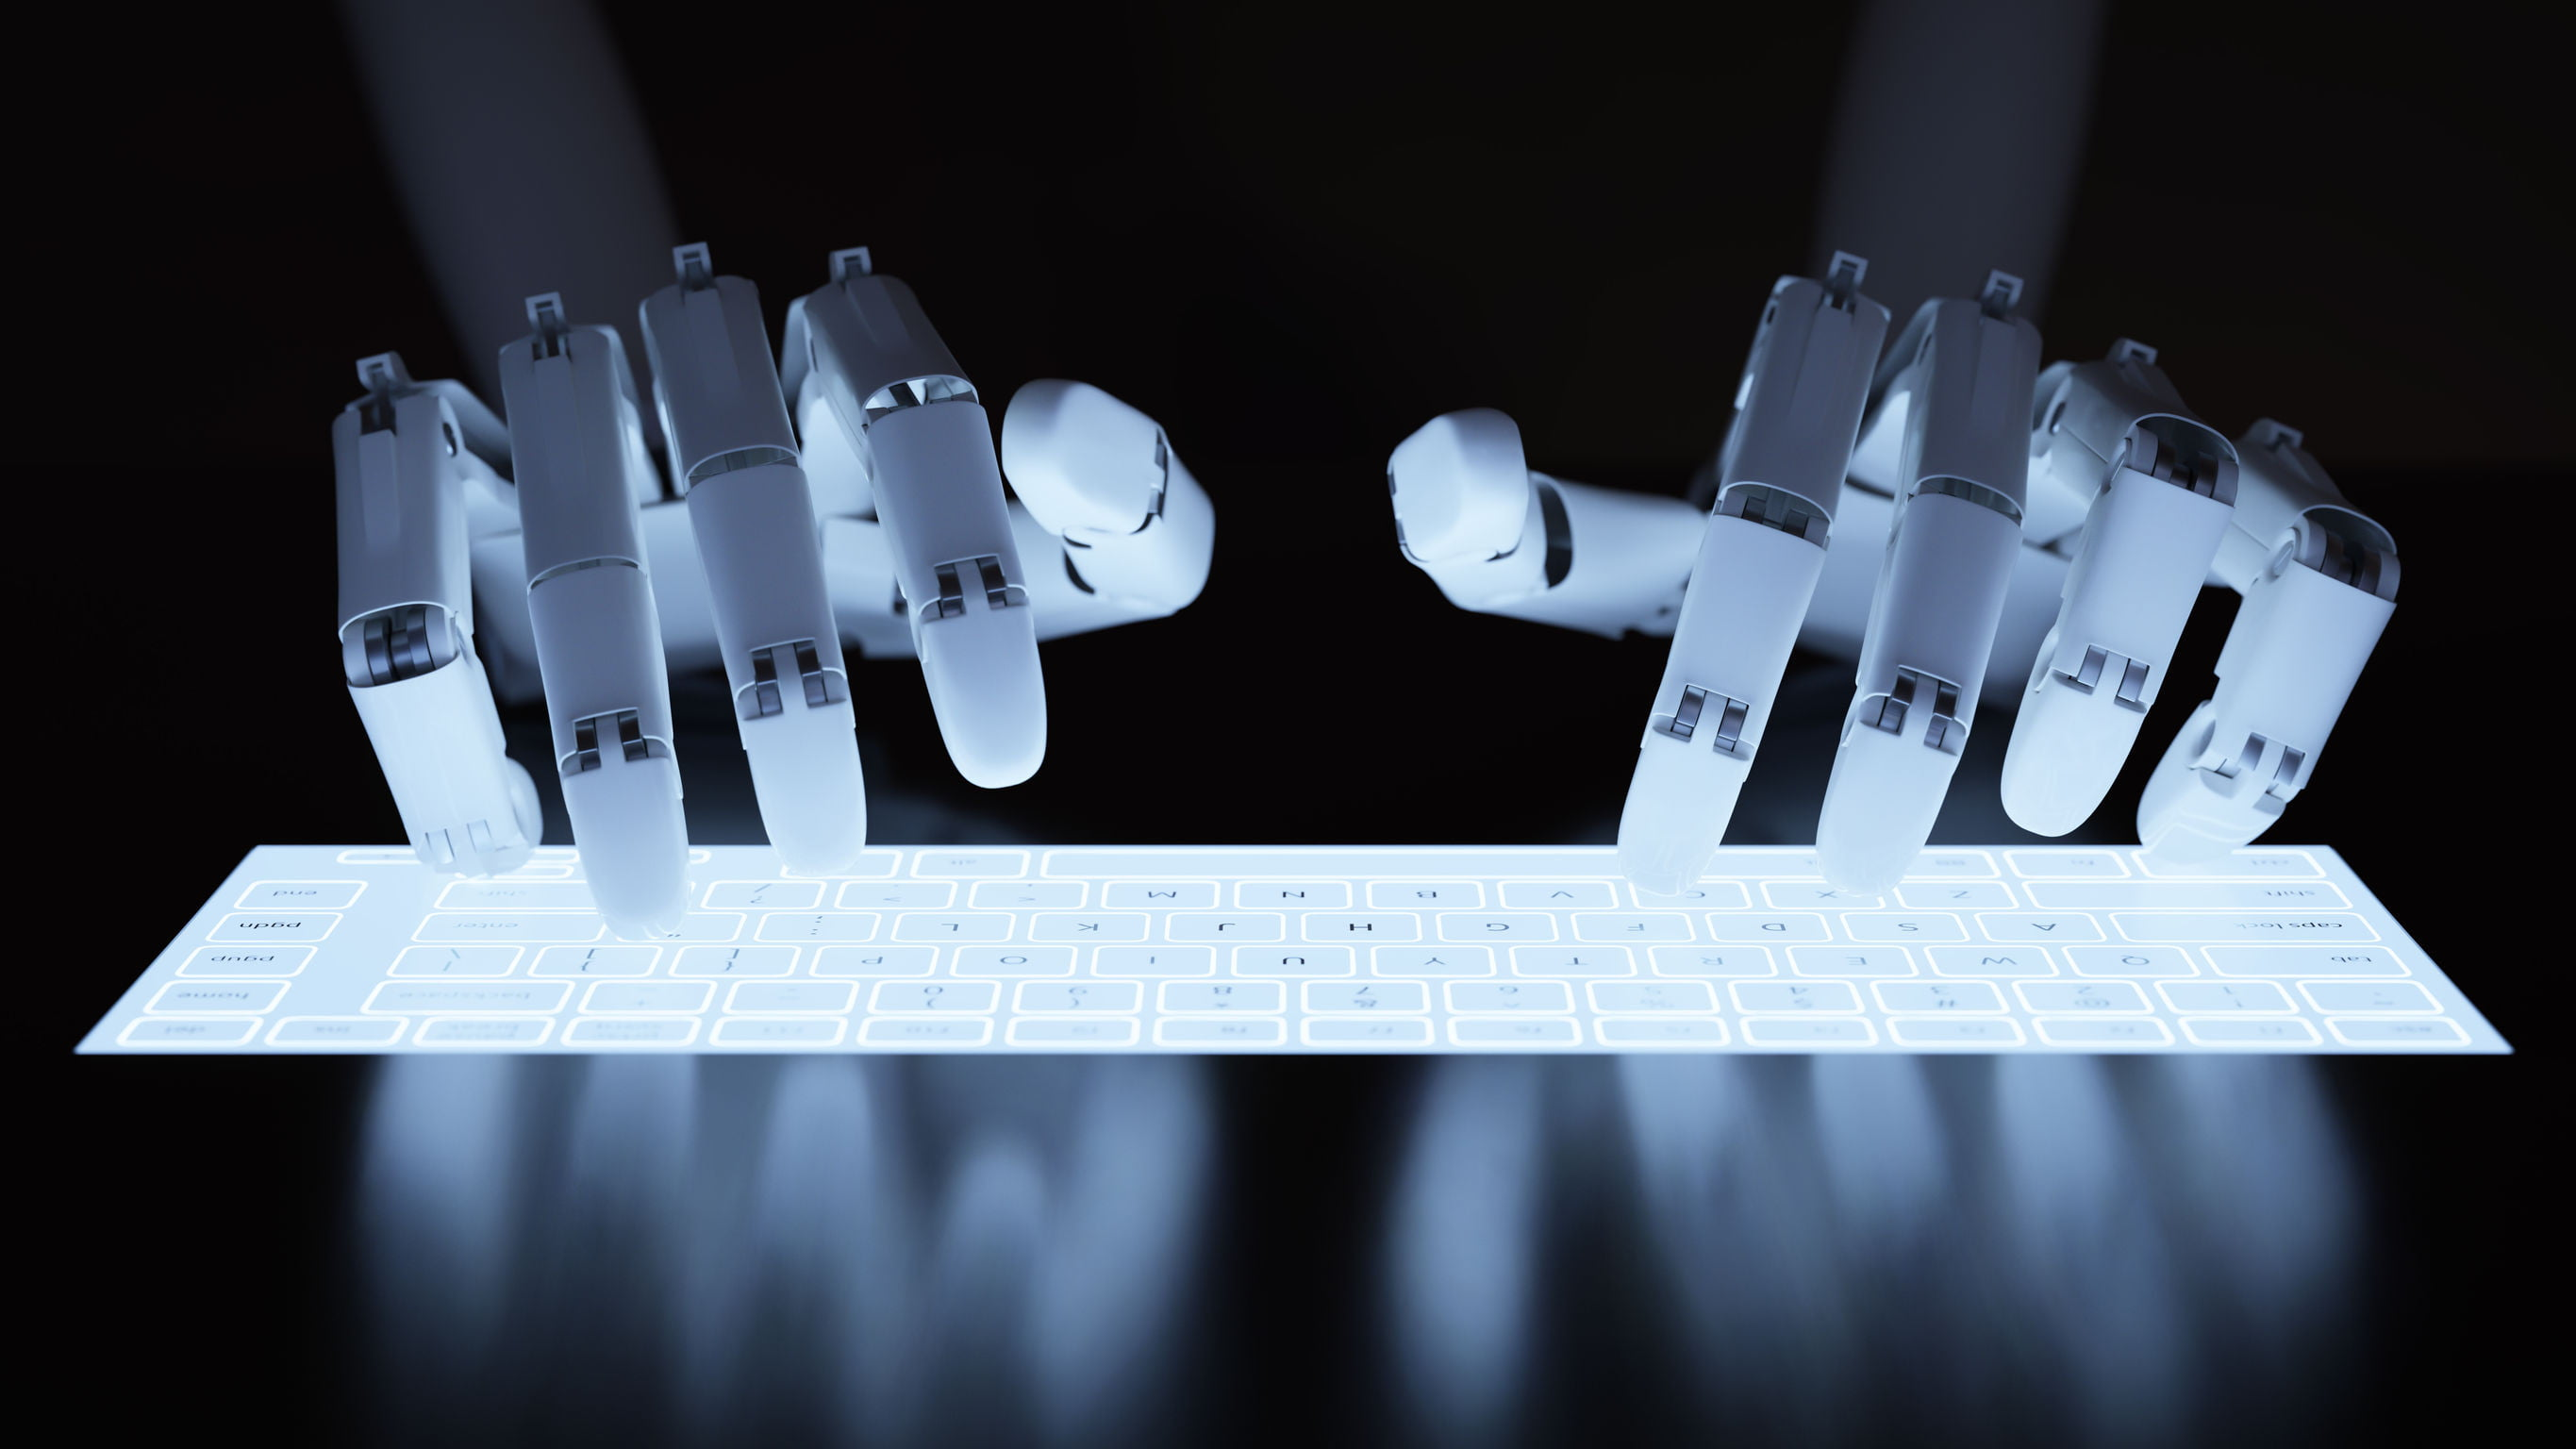 robot typing on conceptual self illuminated keyboard 2731x1536 ver=1